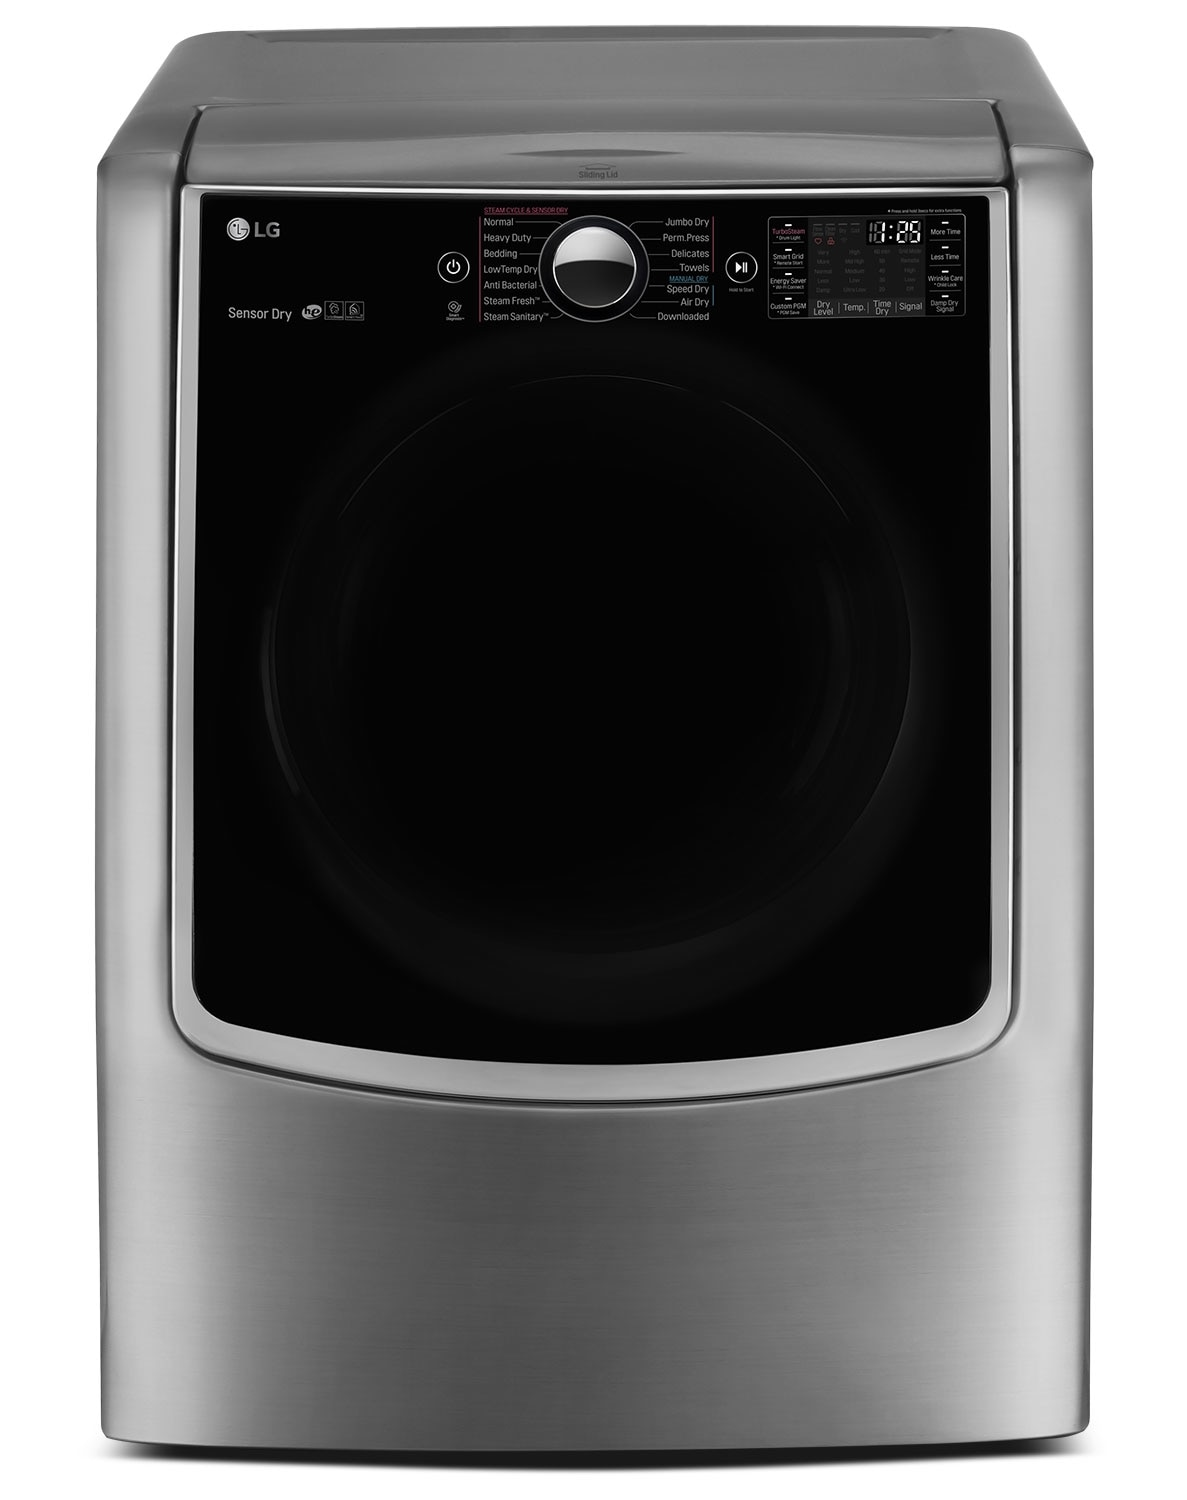 LG 9.0 Cu. Ft. Mega Capacity Gas Steam Dryer – Graphite Steel